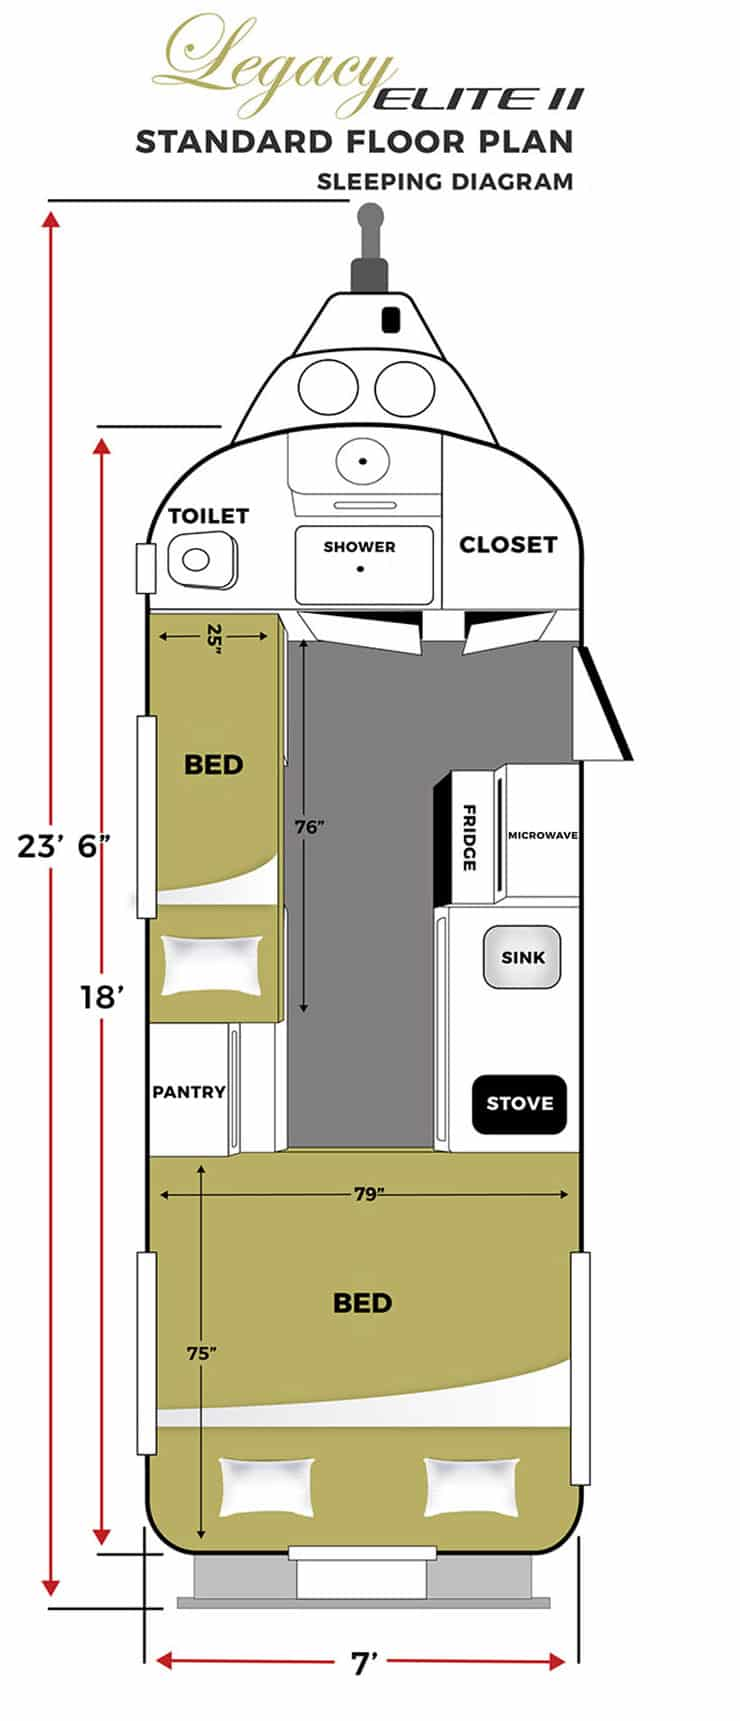 oliver travel trailers legacy elite 2 standard sleeping floor plan horizontal